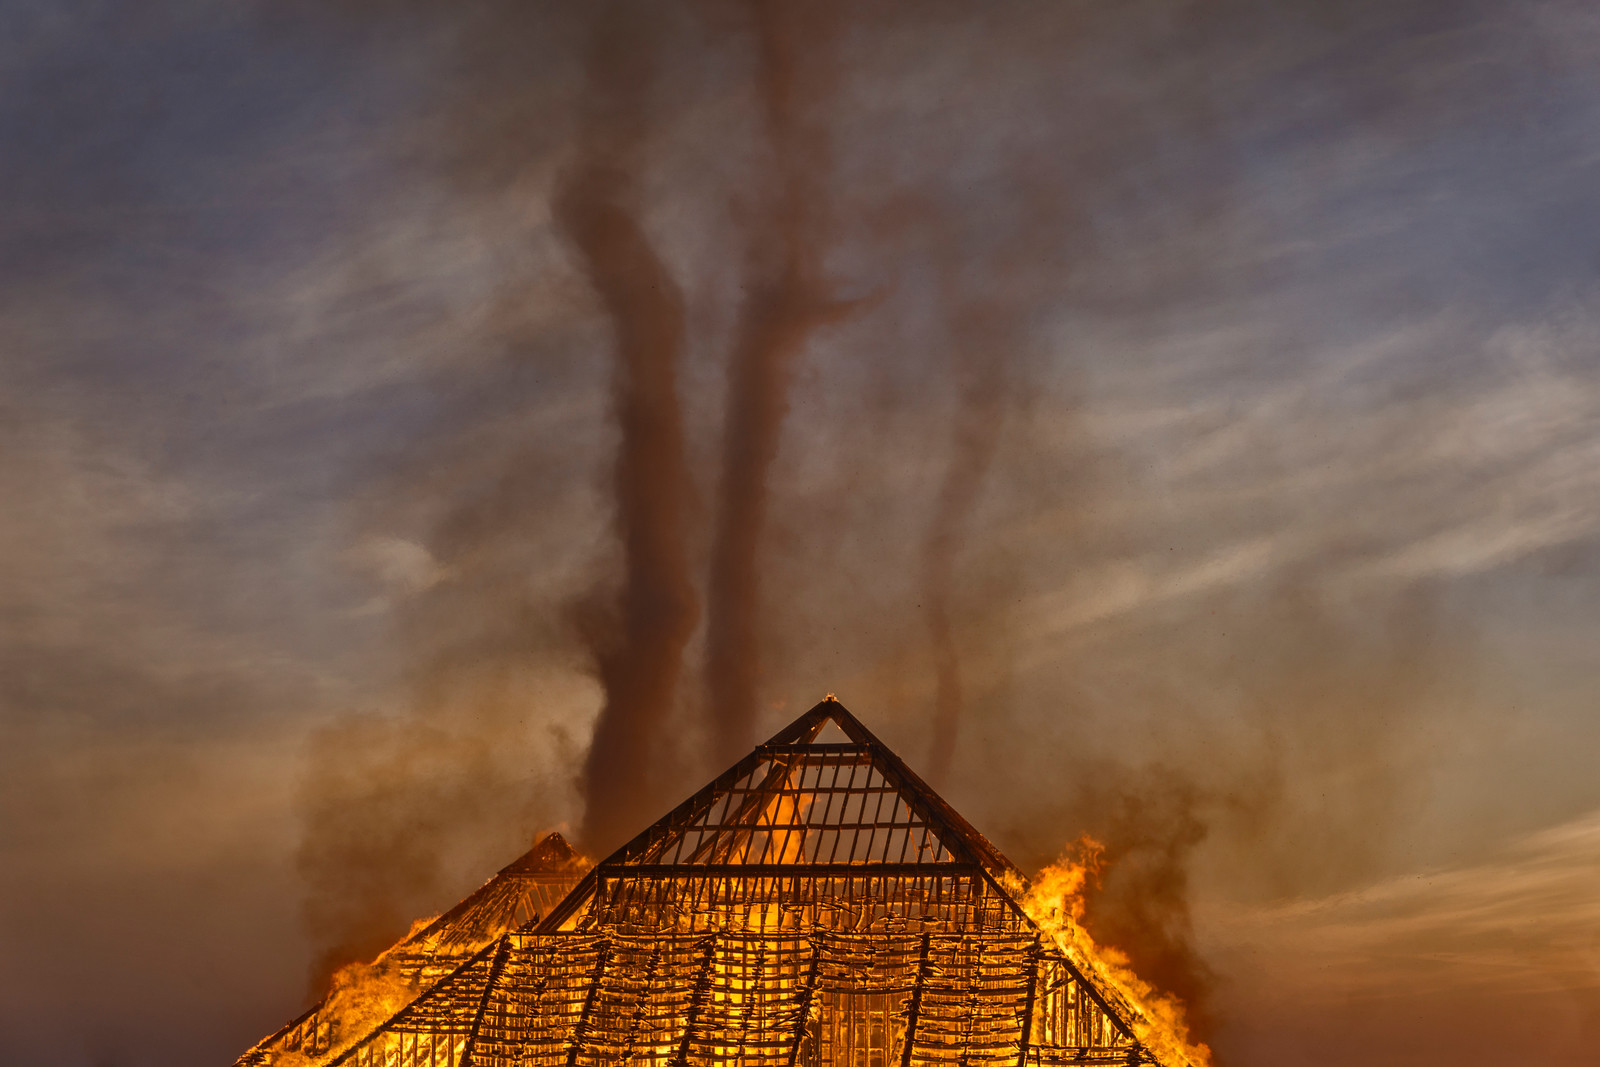 Catacomb of Veils goes up in flames